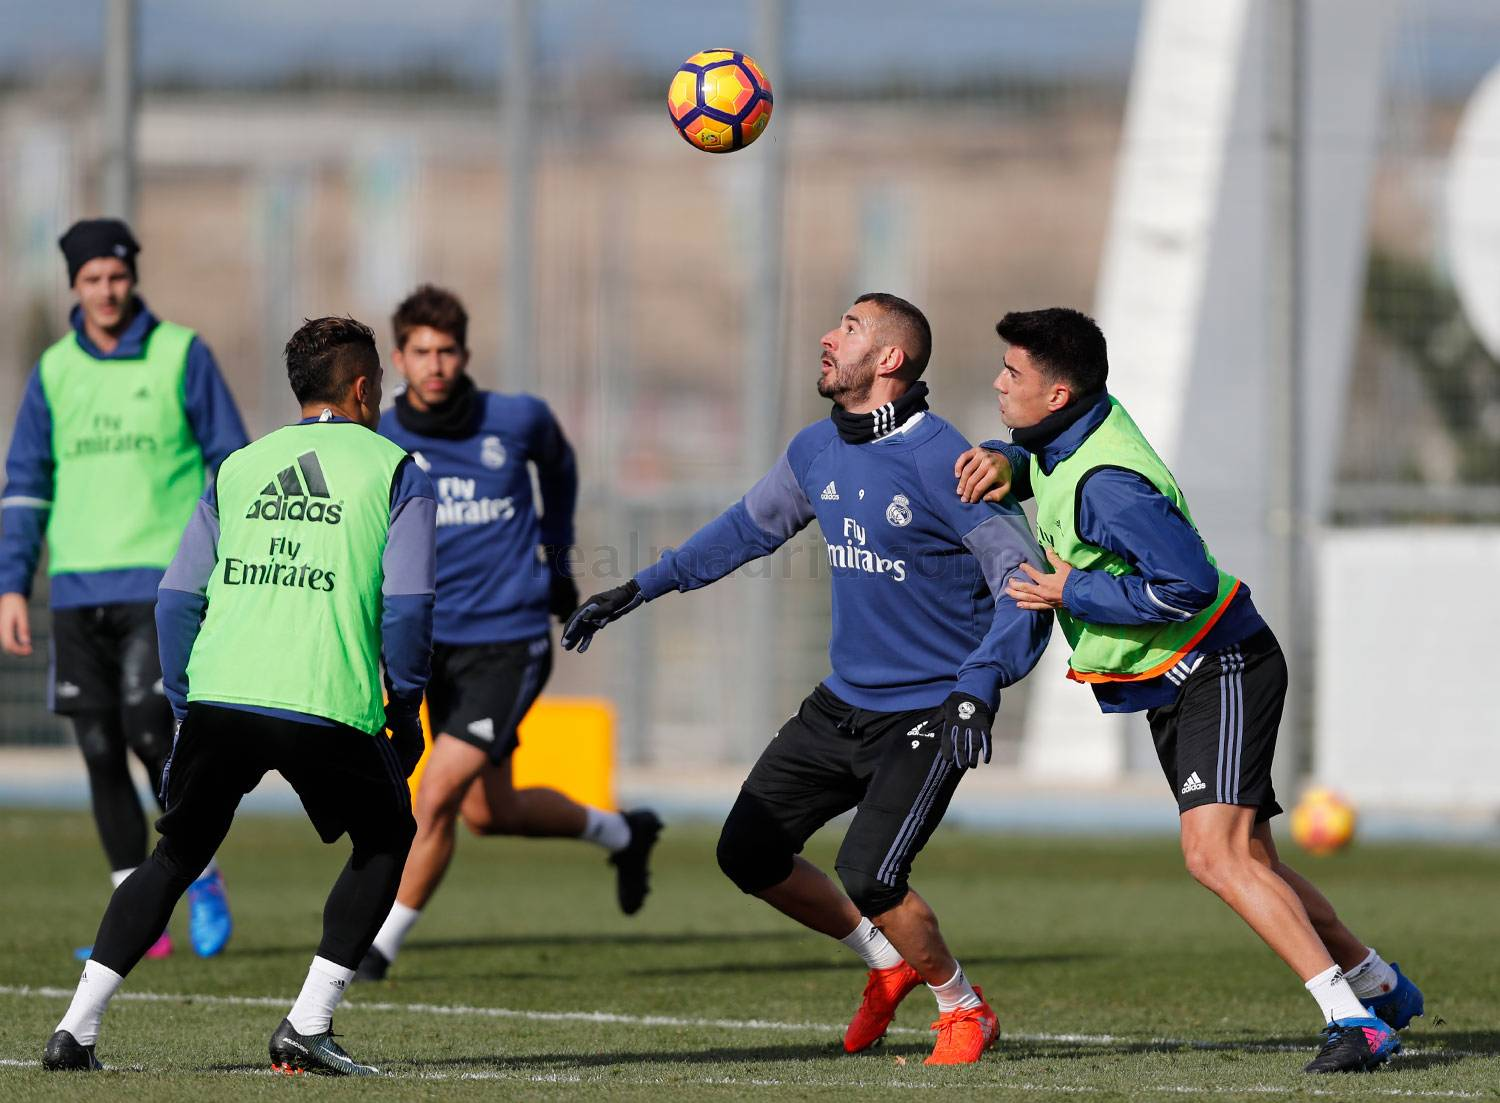 Real Madrid - Entrenamiento del Real Madrid - 19-01-2017